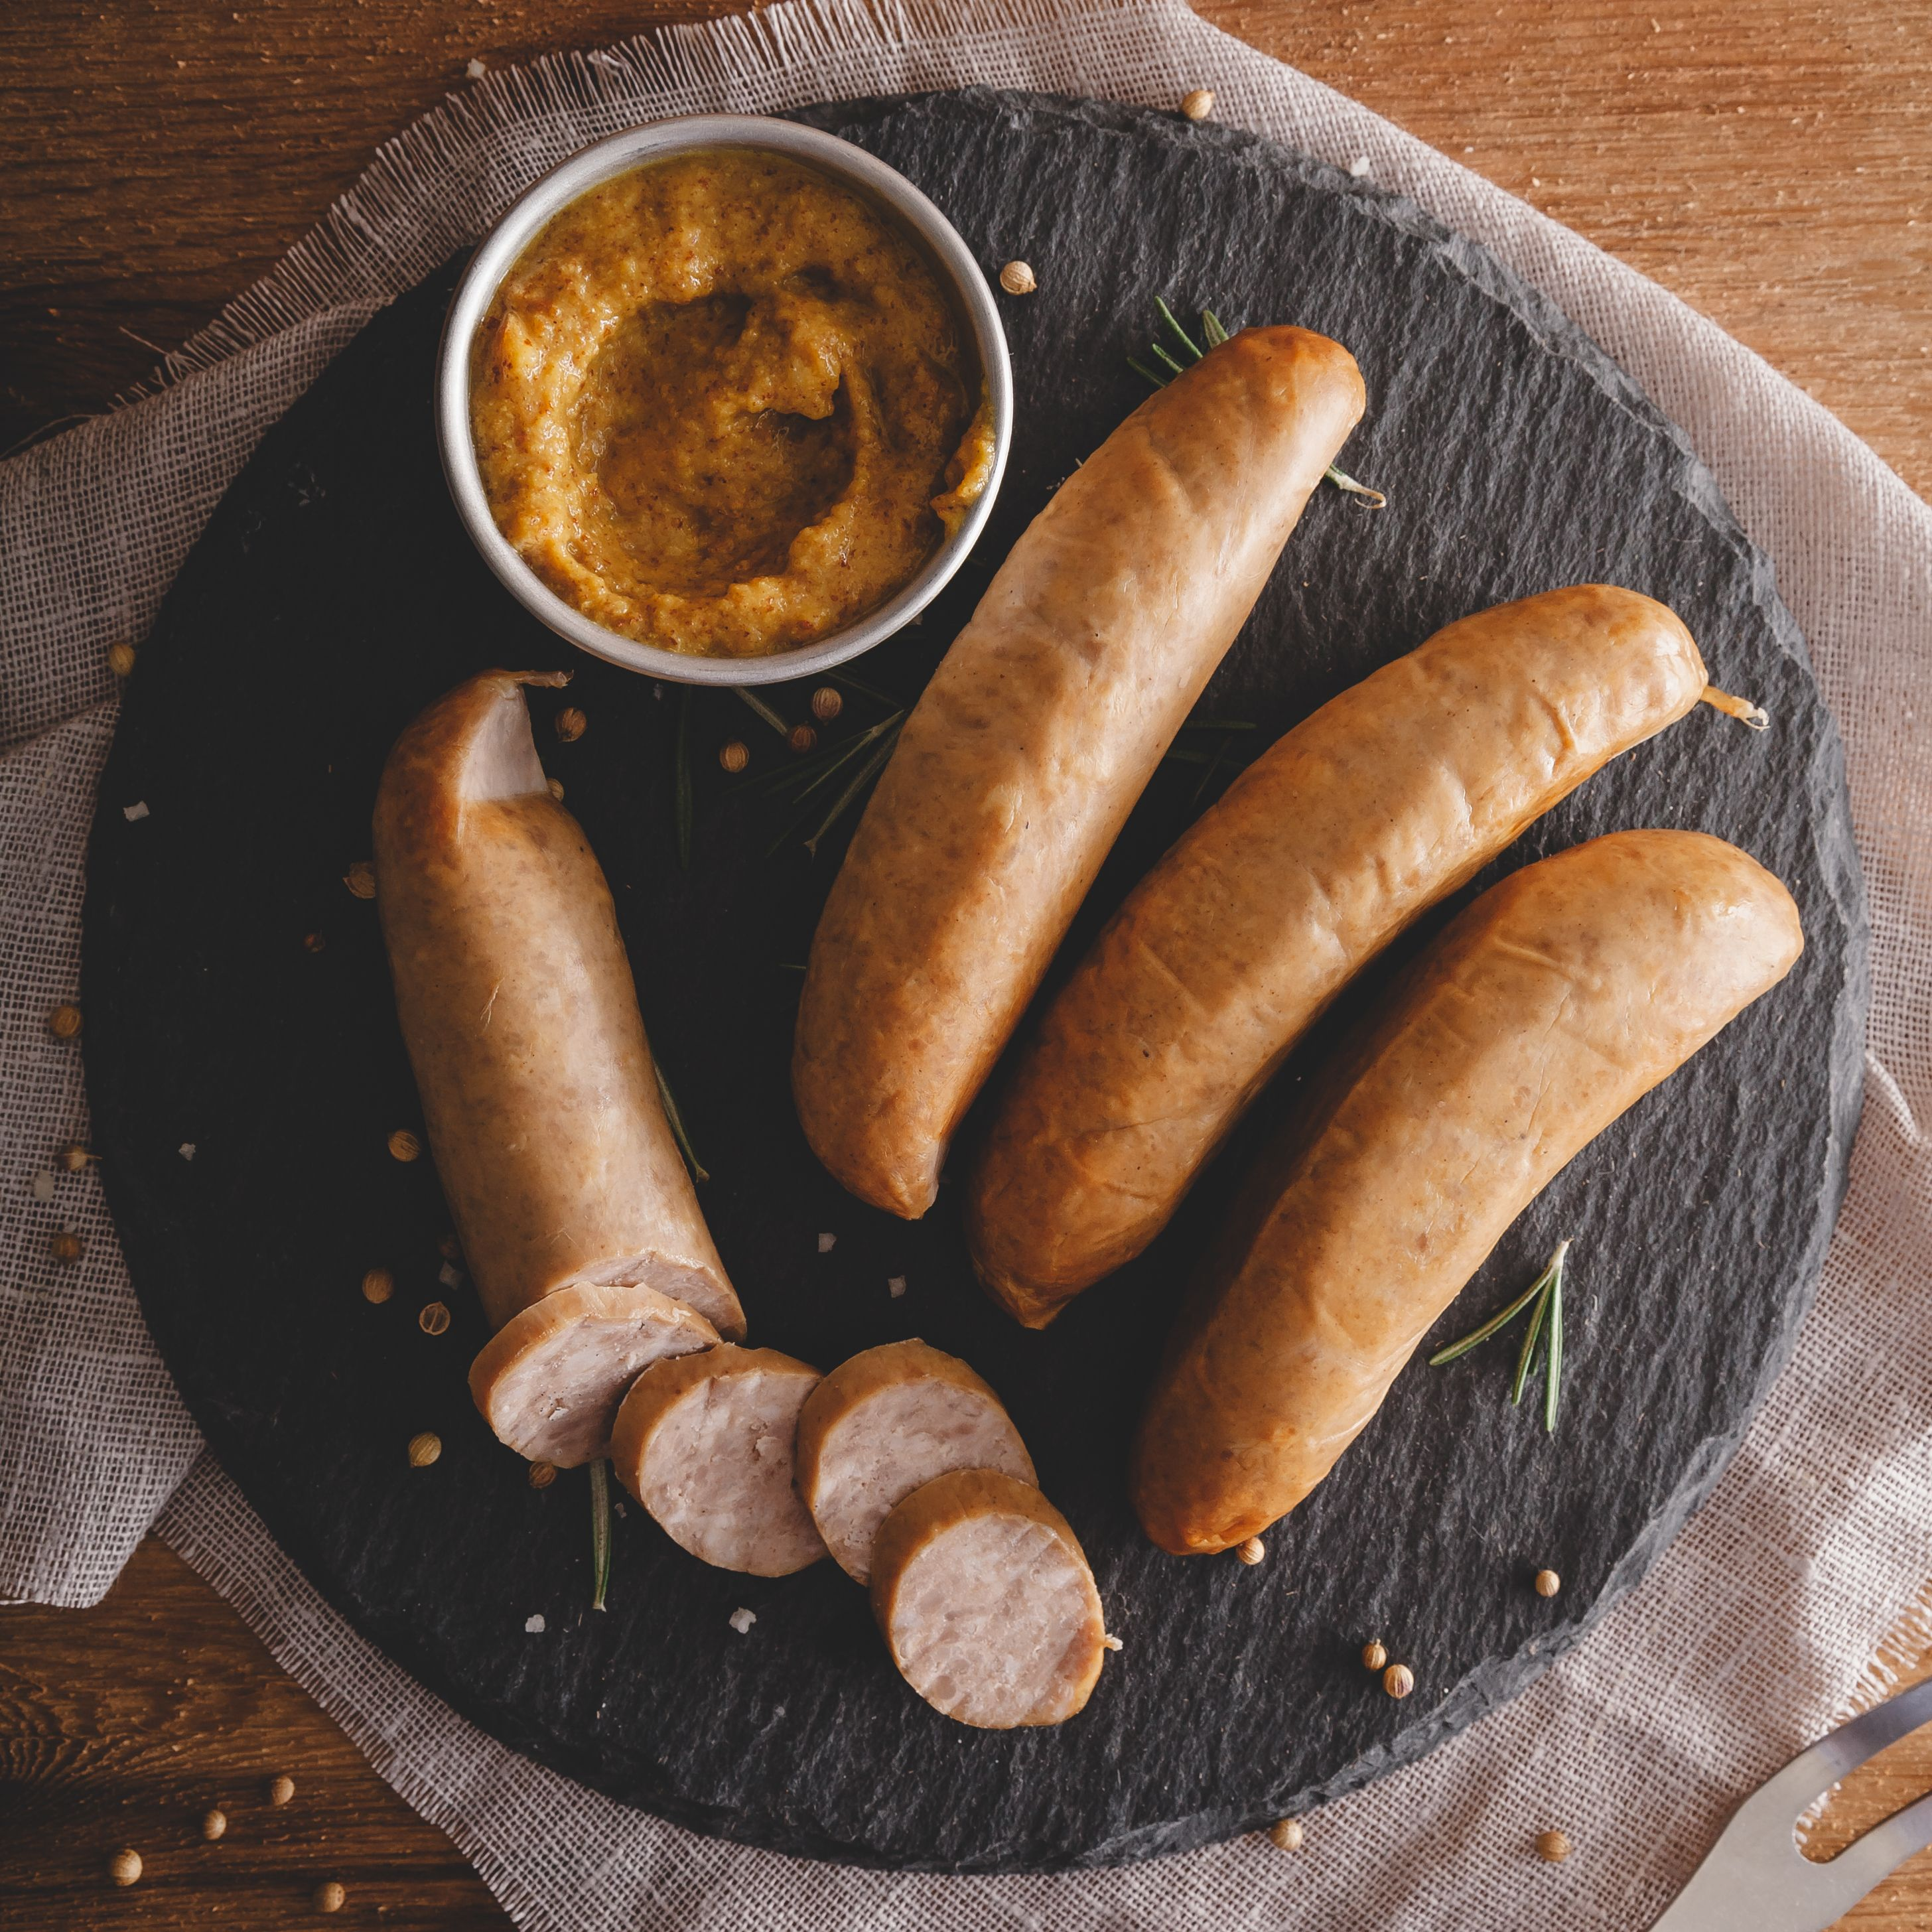 Dogfish Head Brats: Forget the traditional Ball Park hot dog (although they do have their place) and step it up with these beer infused brats from Dogfish Head. Something dad would truly appreciate. #dogfishheadbeer #beer #brats #grill #fathersday